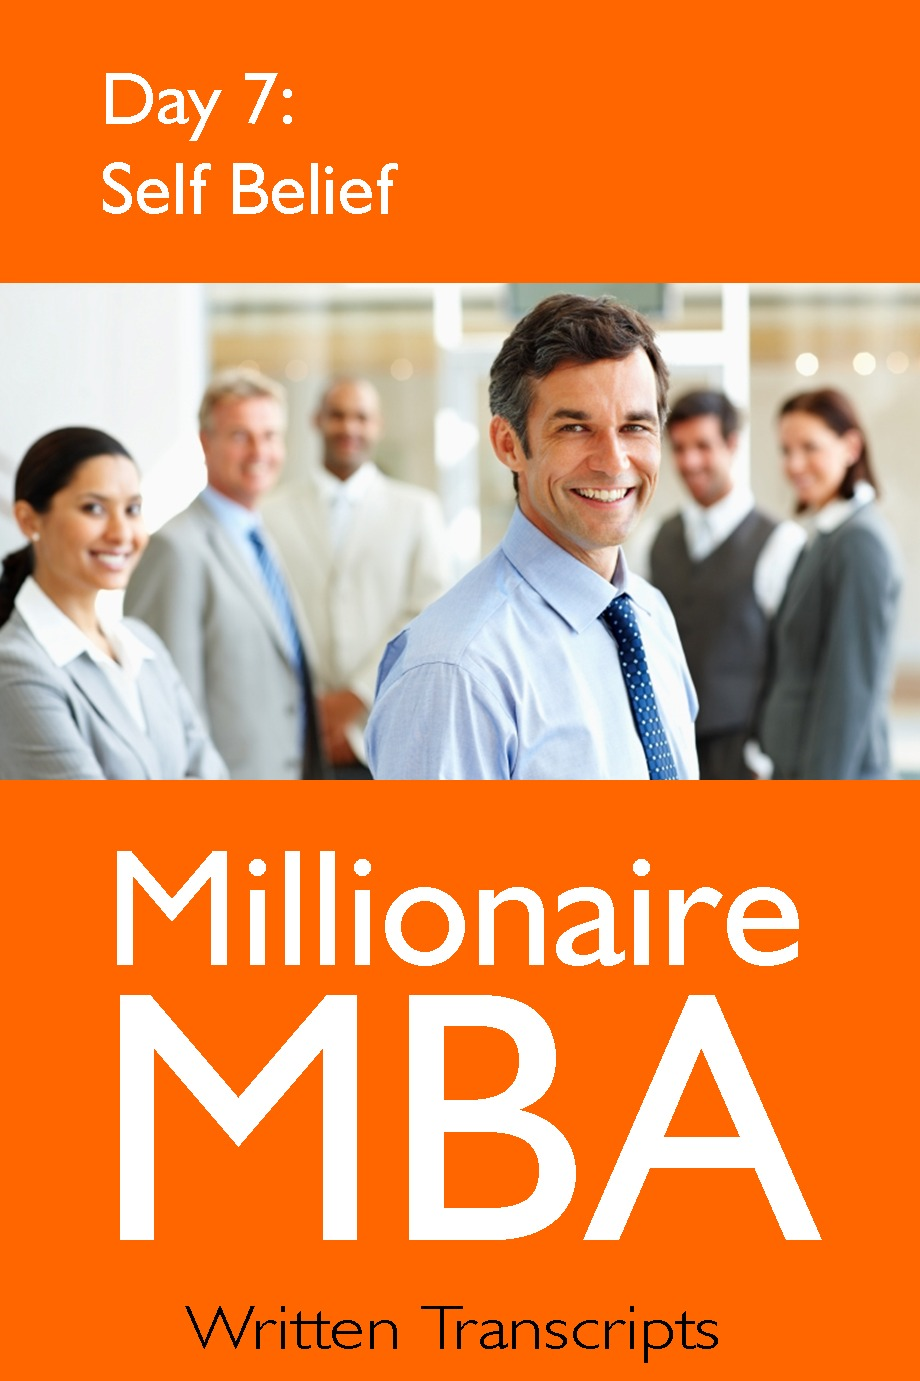 Millionarie MBA Day 7: Self Belief